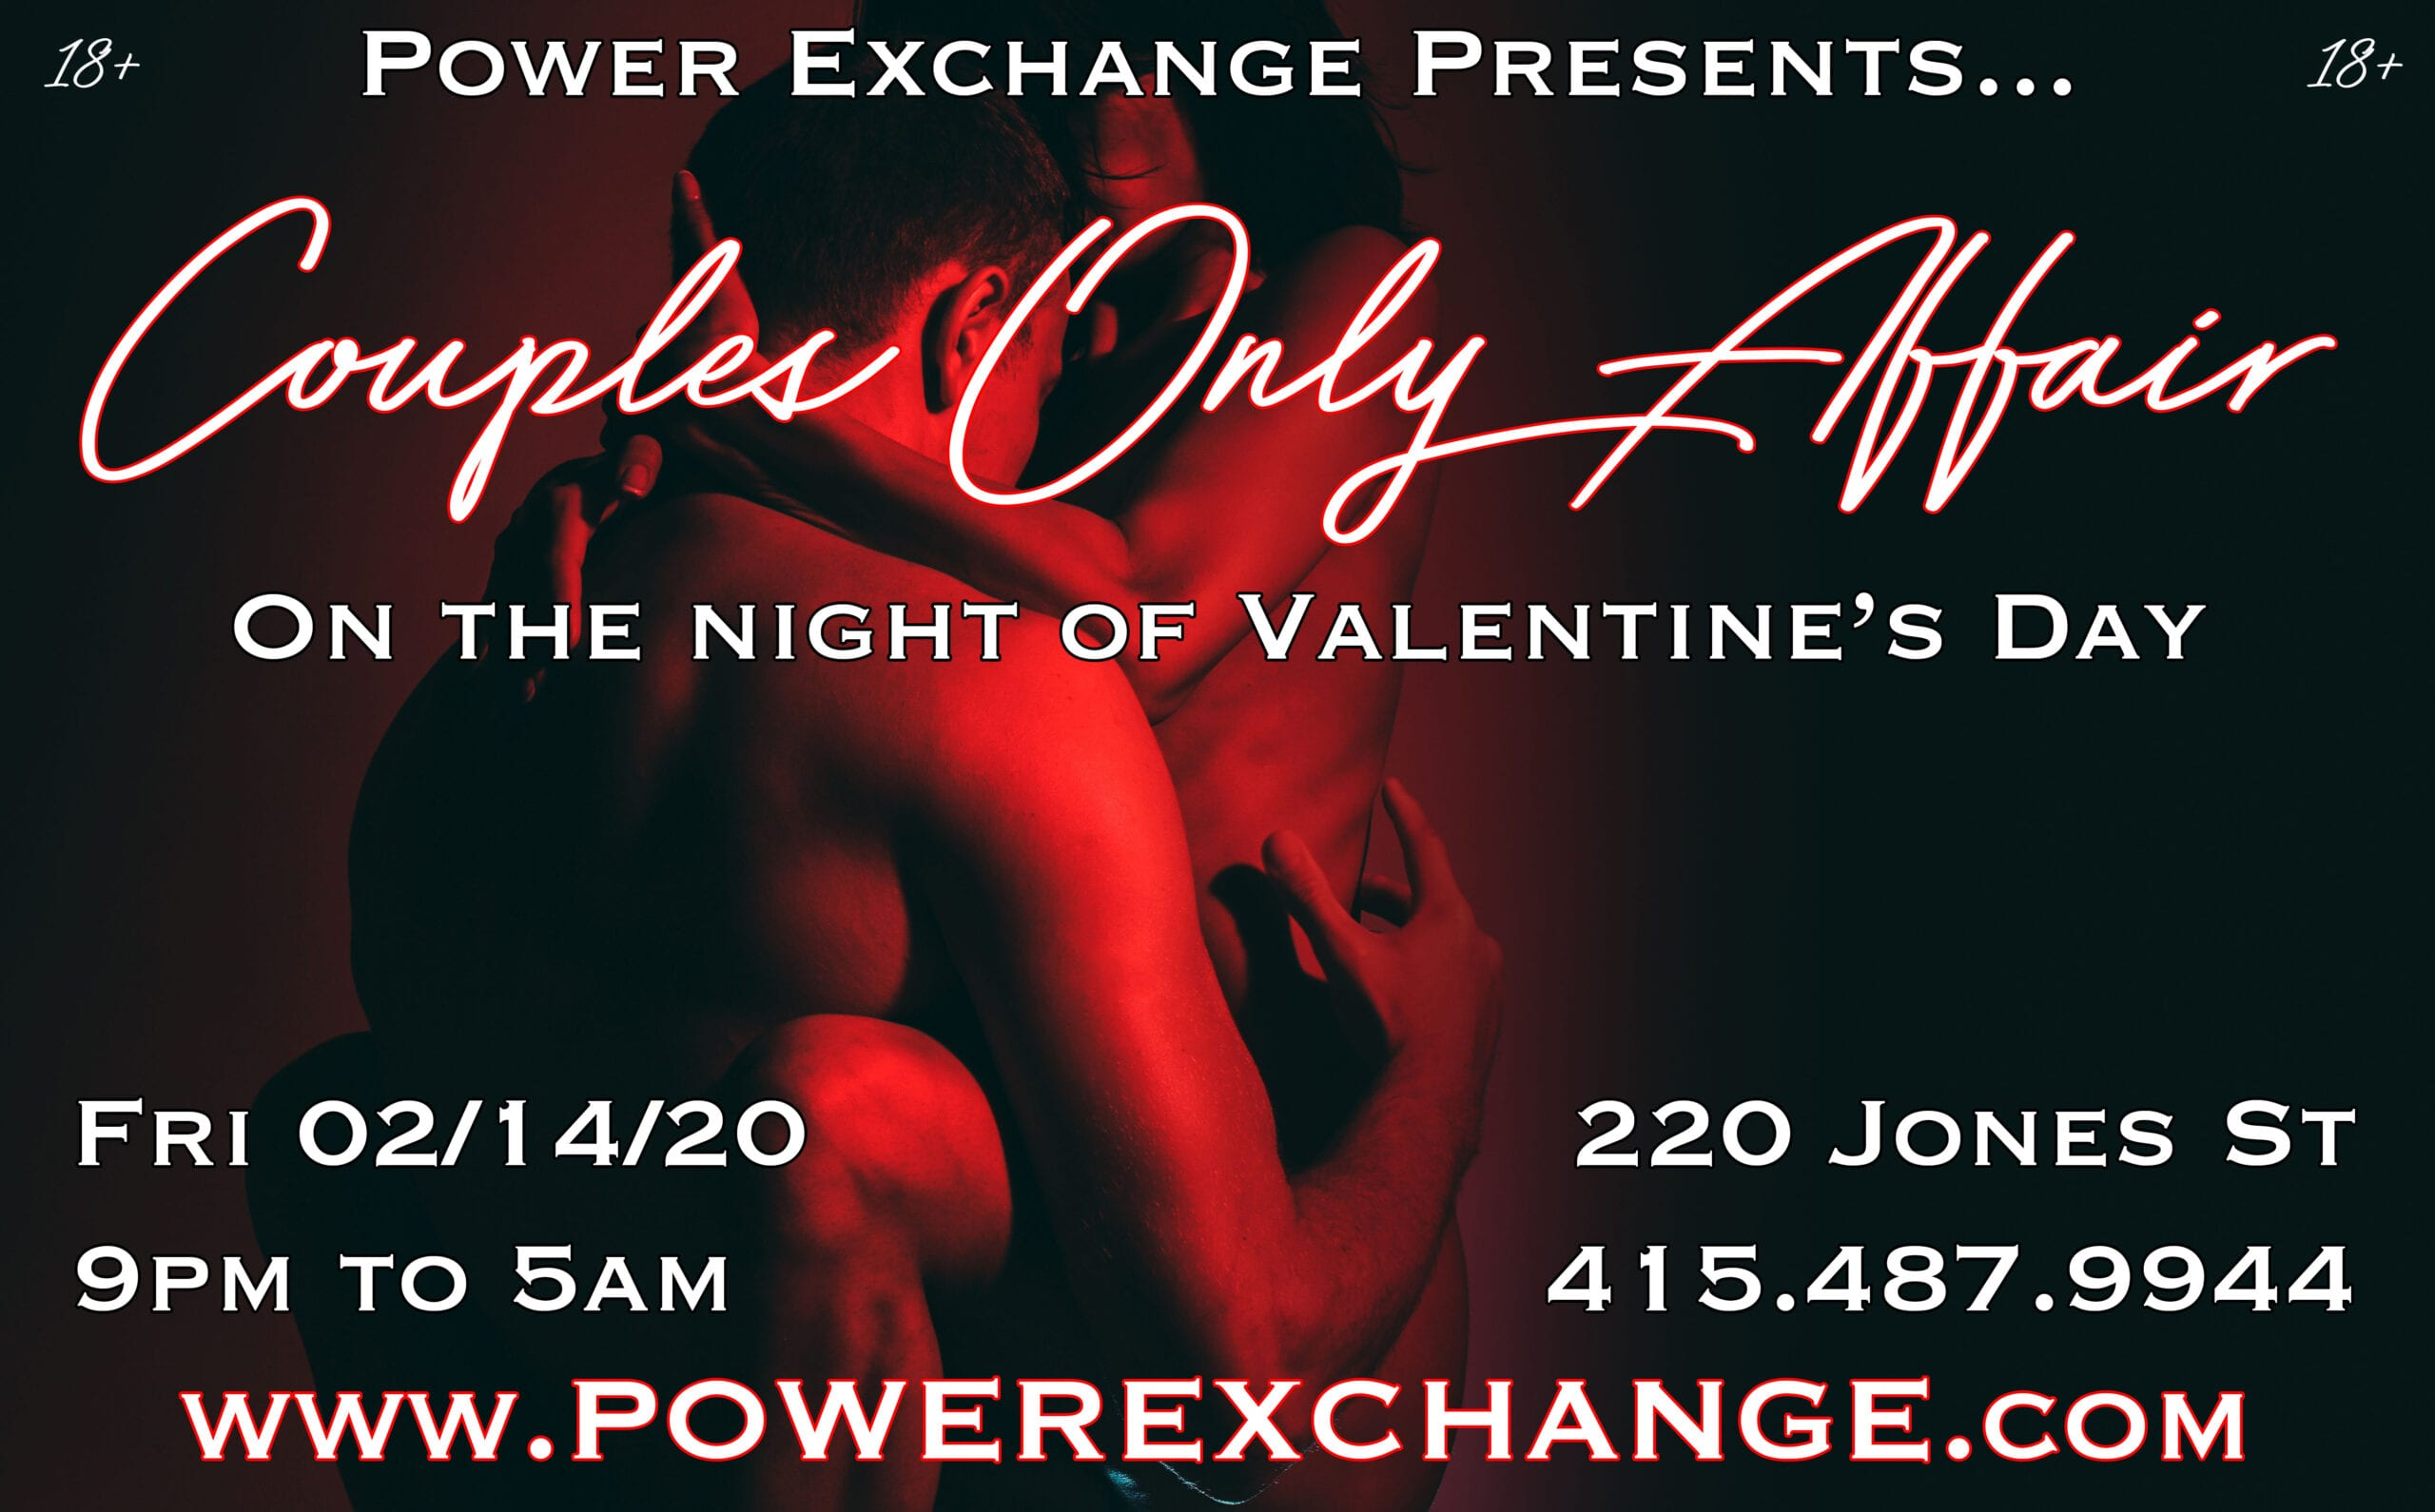 Valentine's Night Couples Only Affair